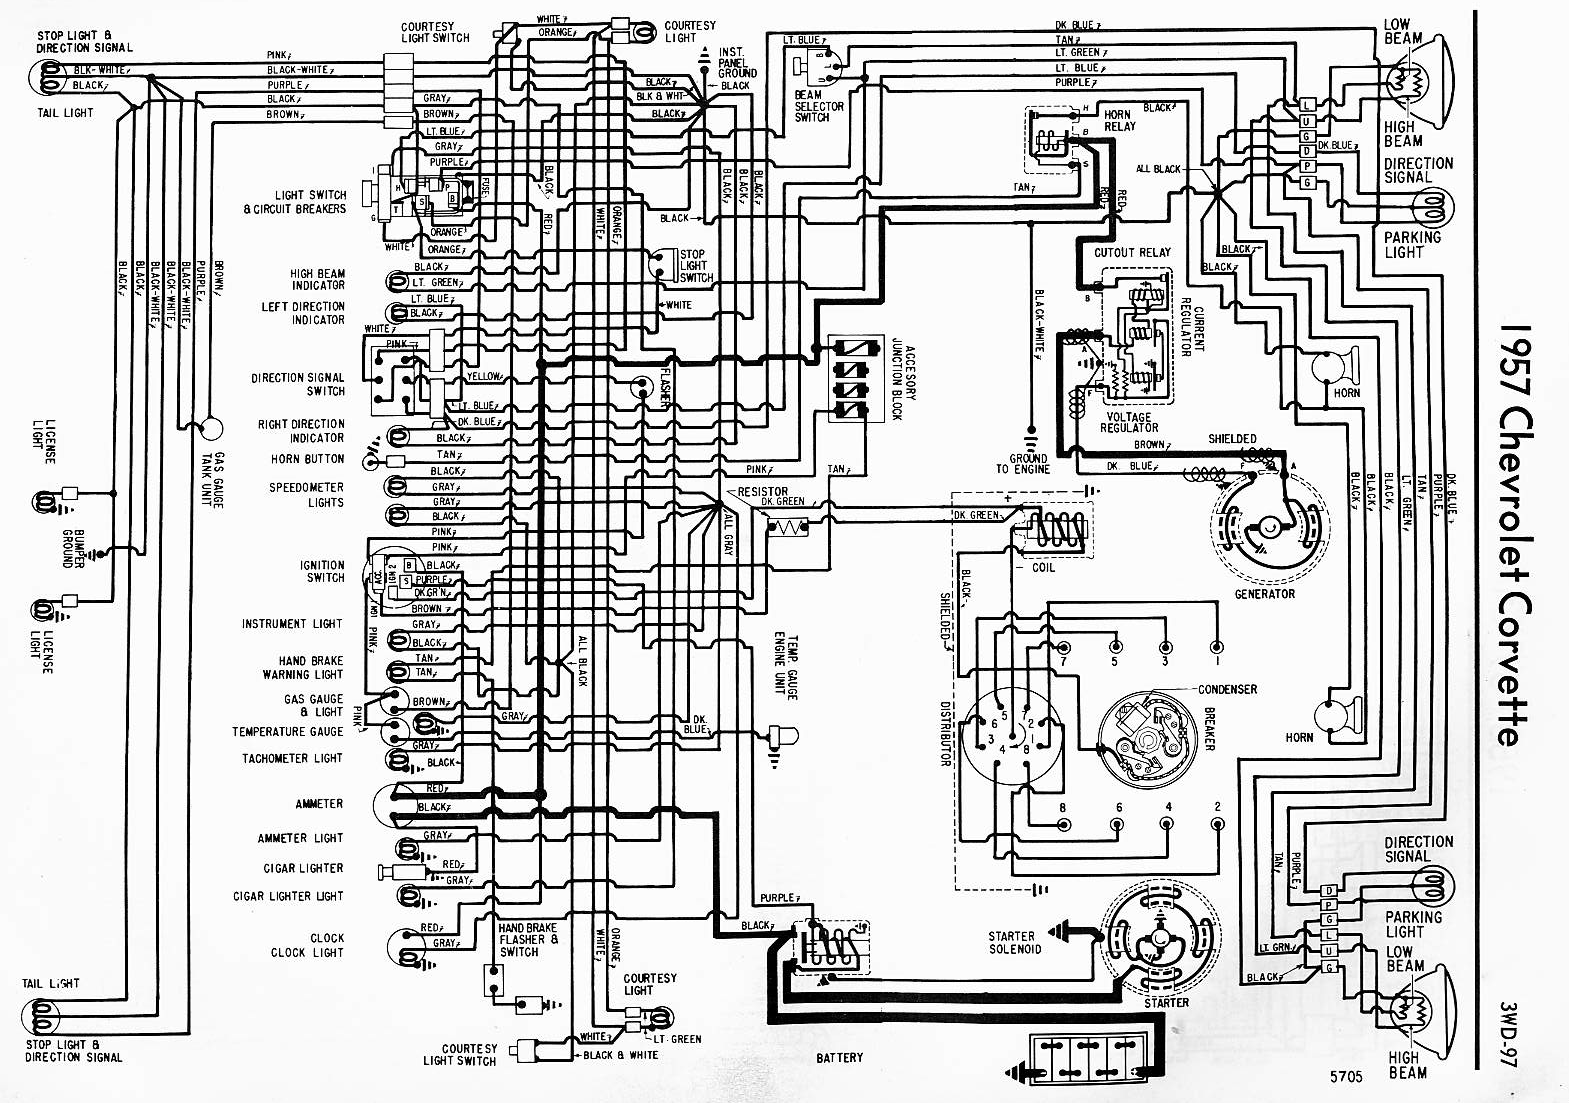 hight resolution of 1980 corvette fuse box diagram simple wiring diagram 1980 corvette fuse box location 1977 corvette fuse